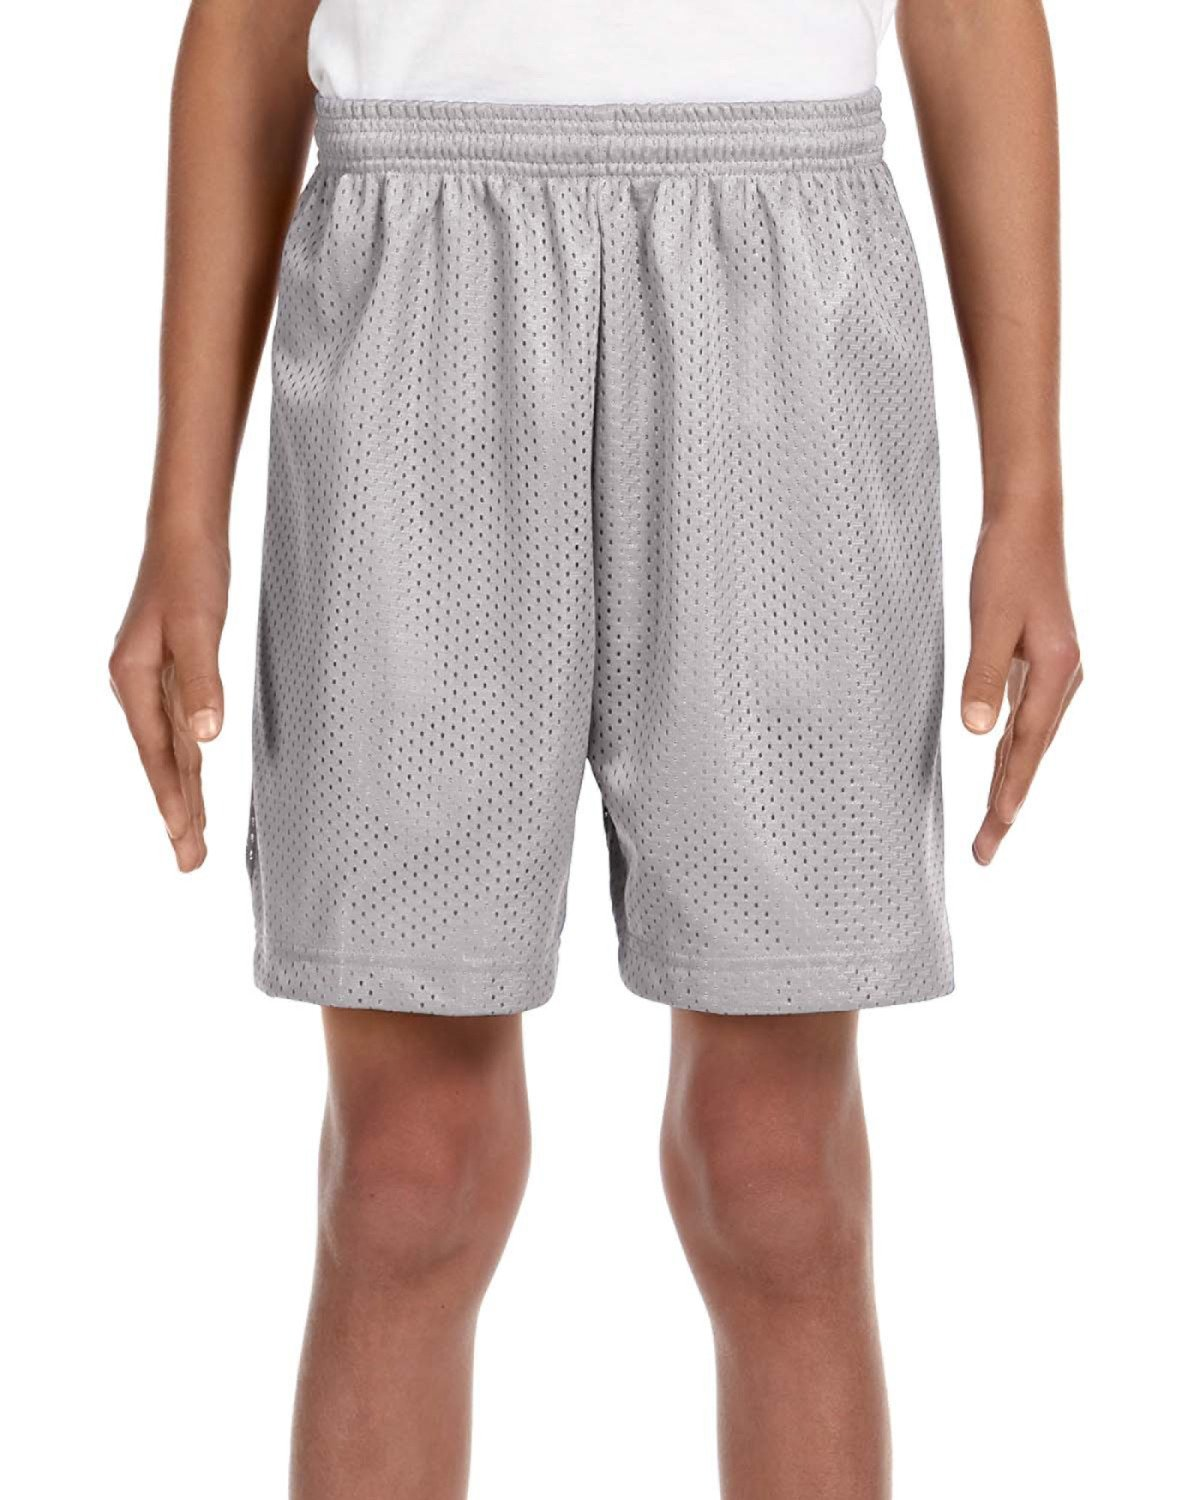 A4 Youth Six Inch Inseam Mesh Short SILVER